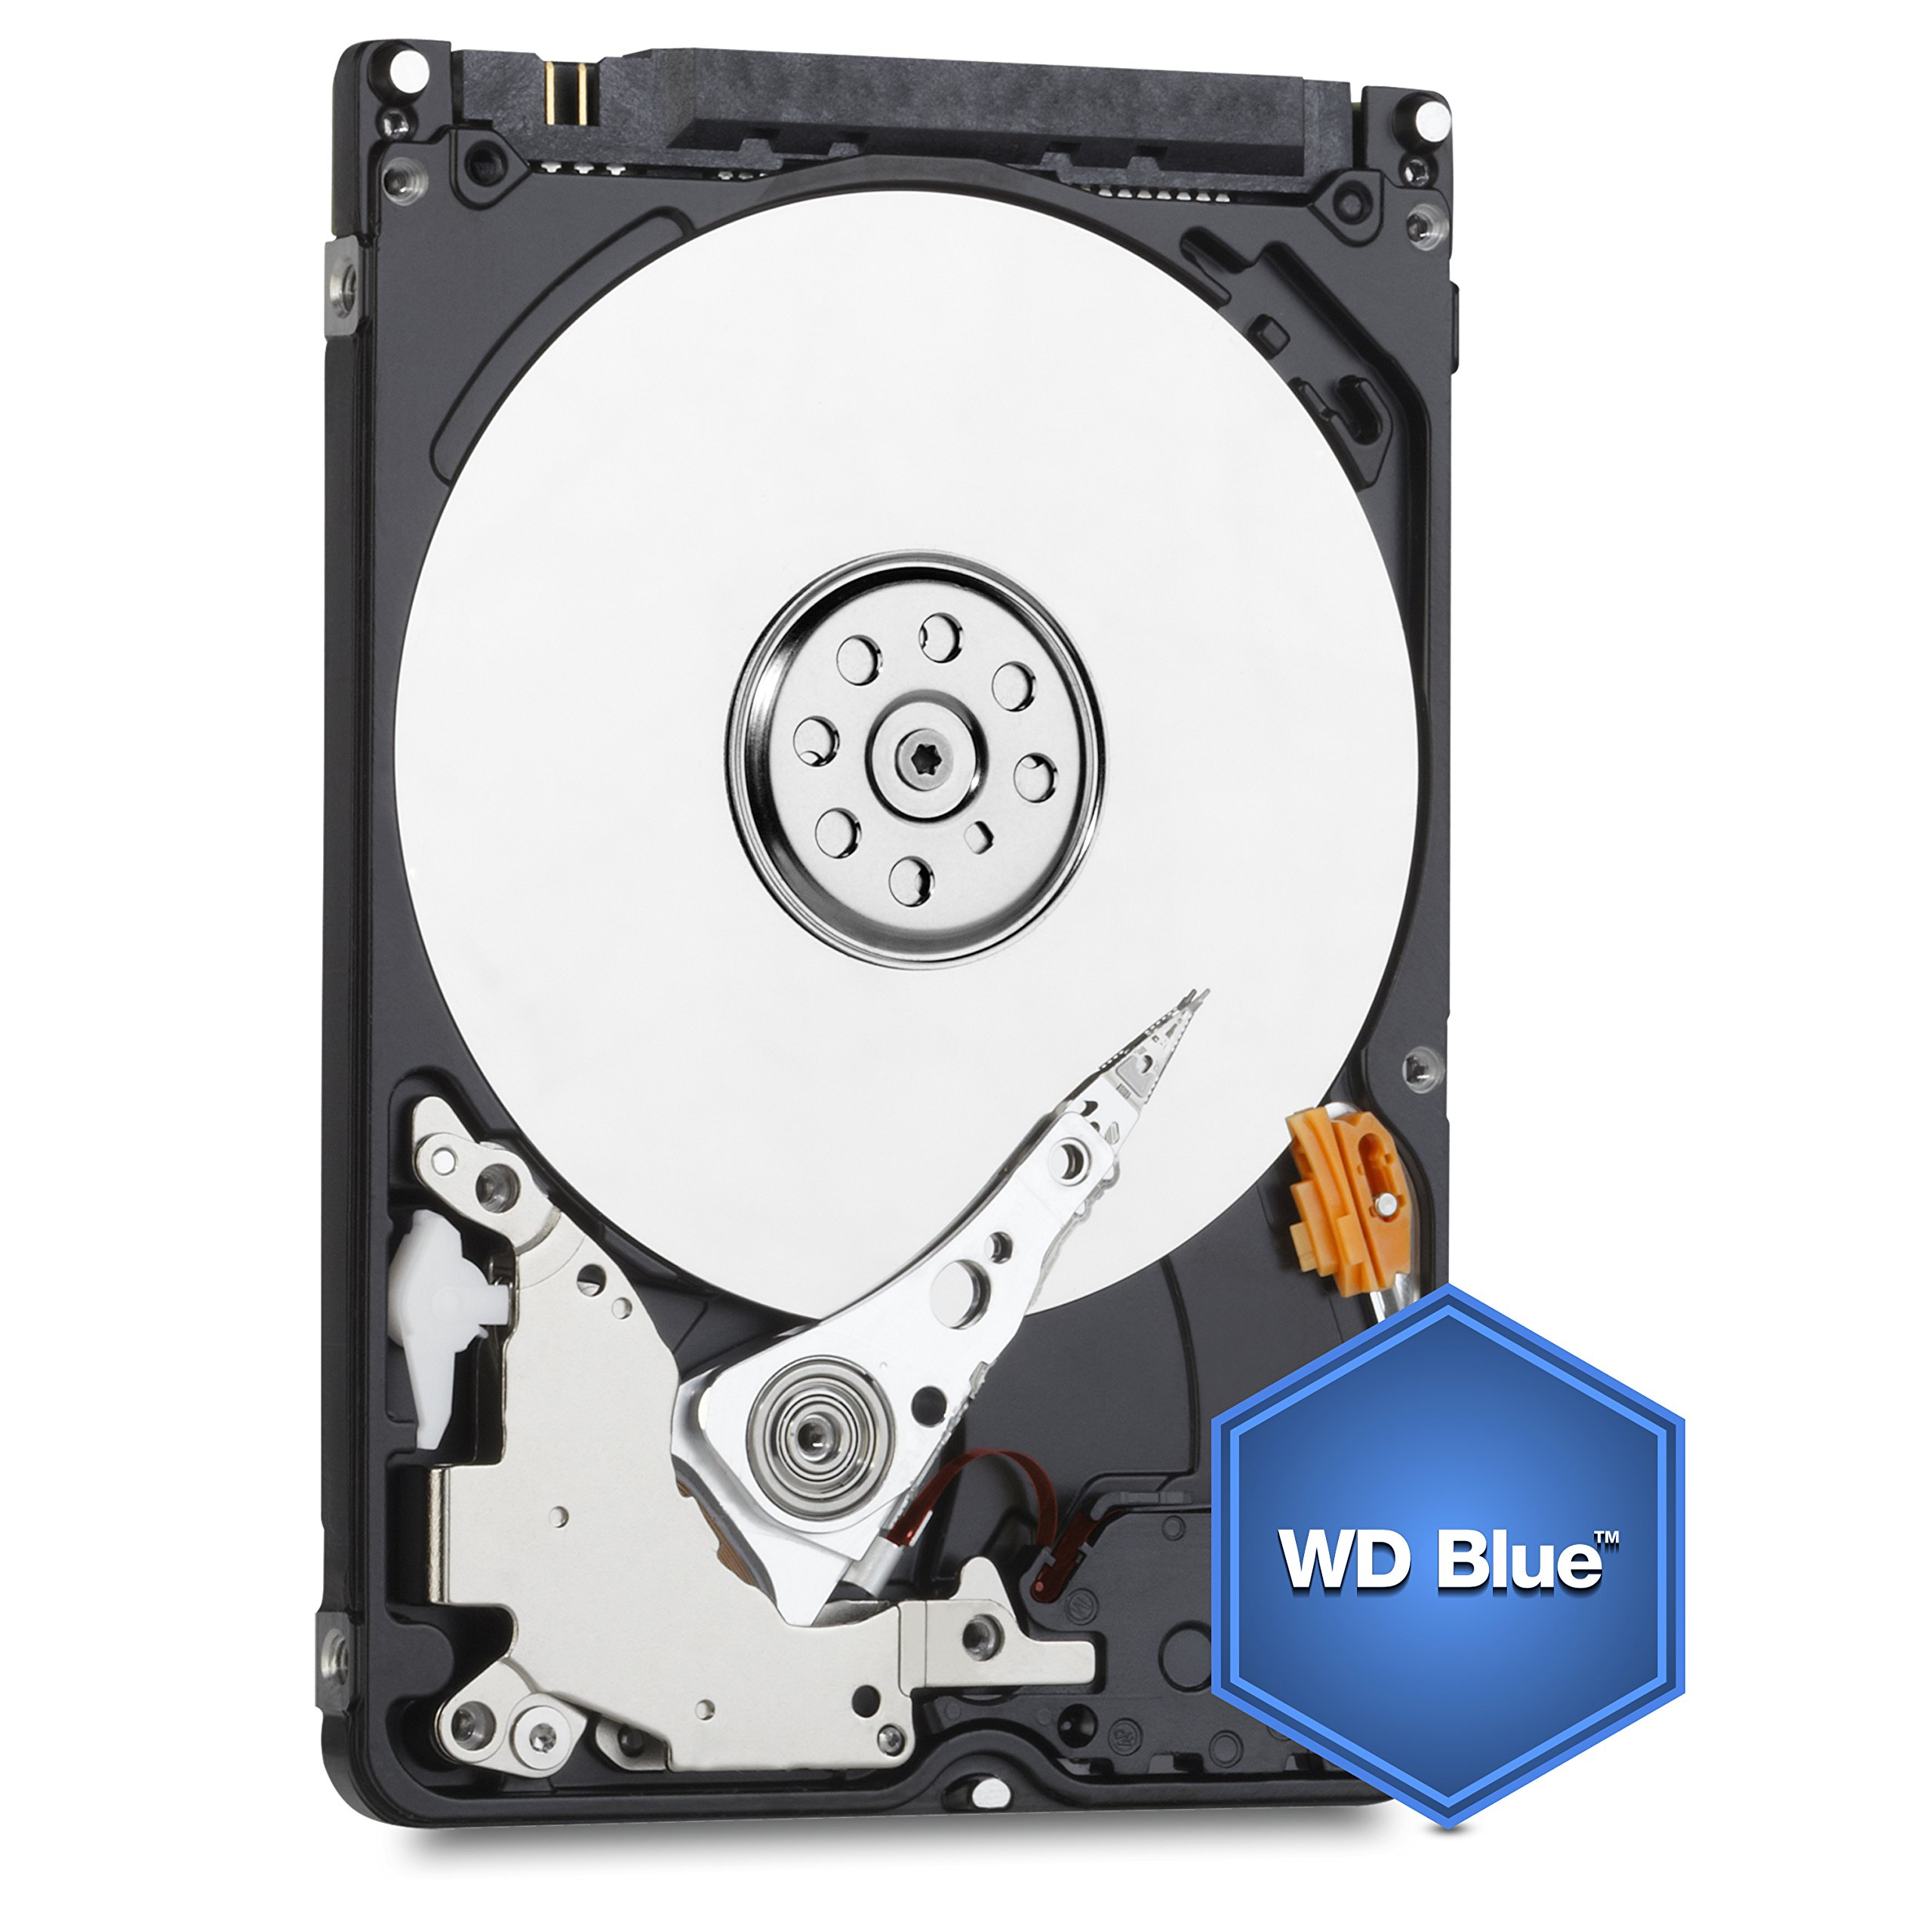 WD Blue 500GB Mobile Hard Disk Drive - 5400 RPM SATA 6 Gb/s 7.0 MM 2.5 Inch - WD5000LPCX by Western Digital